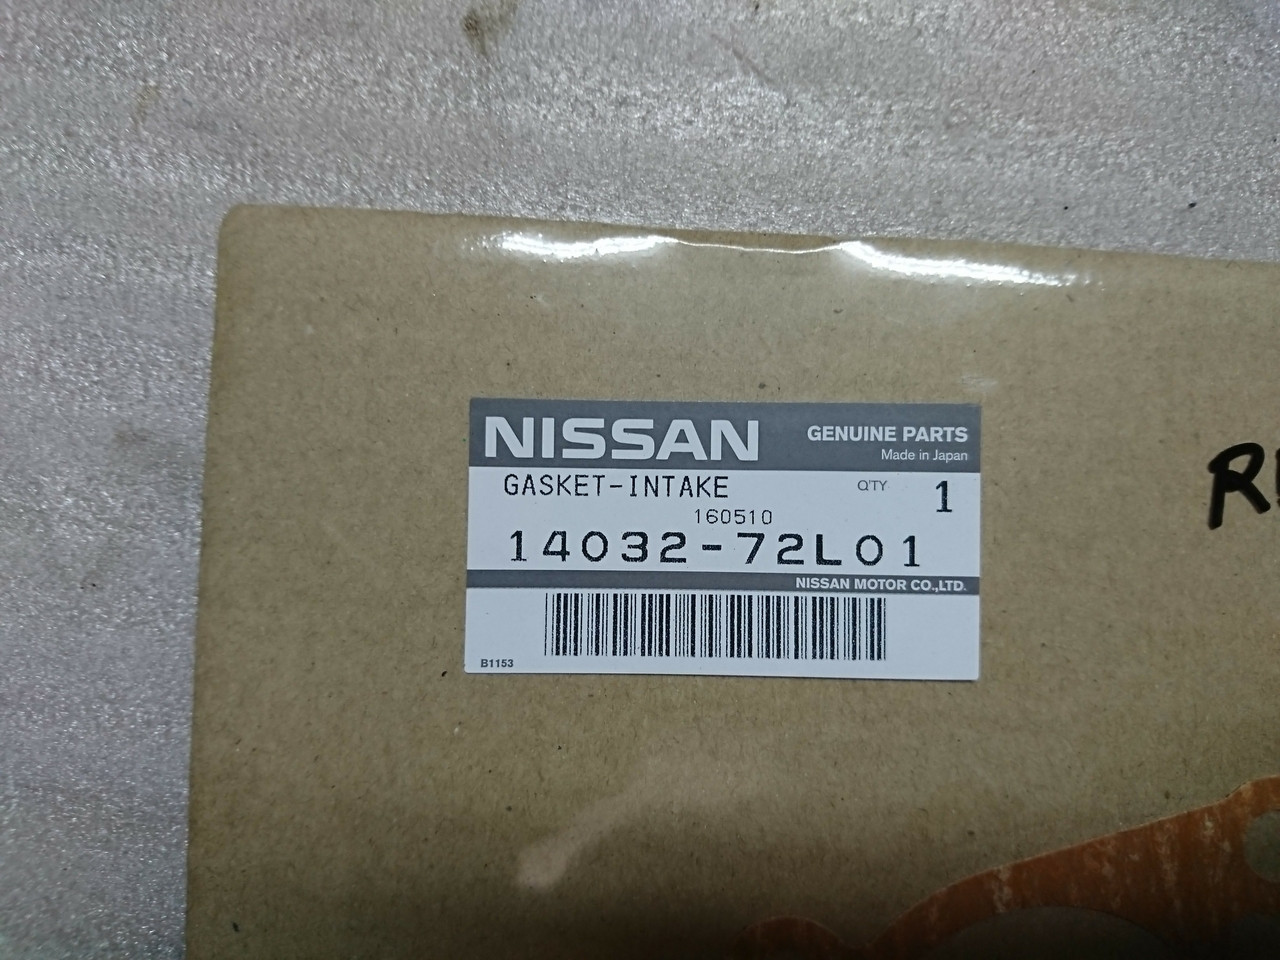 Nissan Genuine OEM Intake Collector Gasket RB20DET